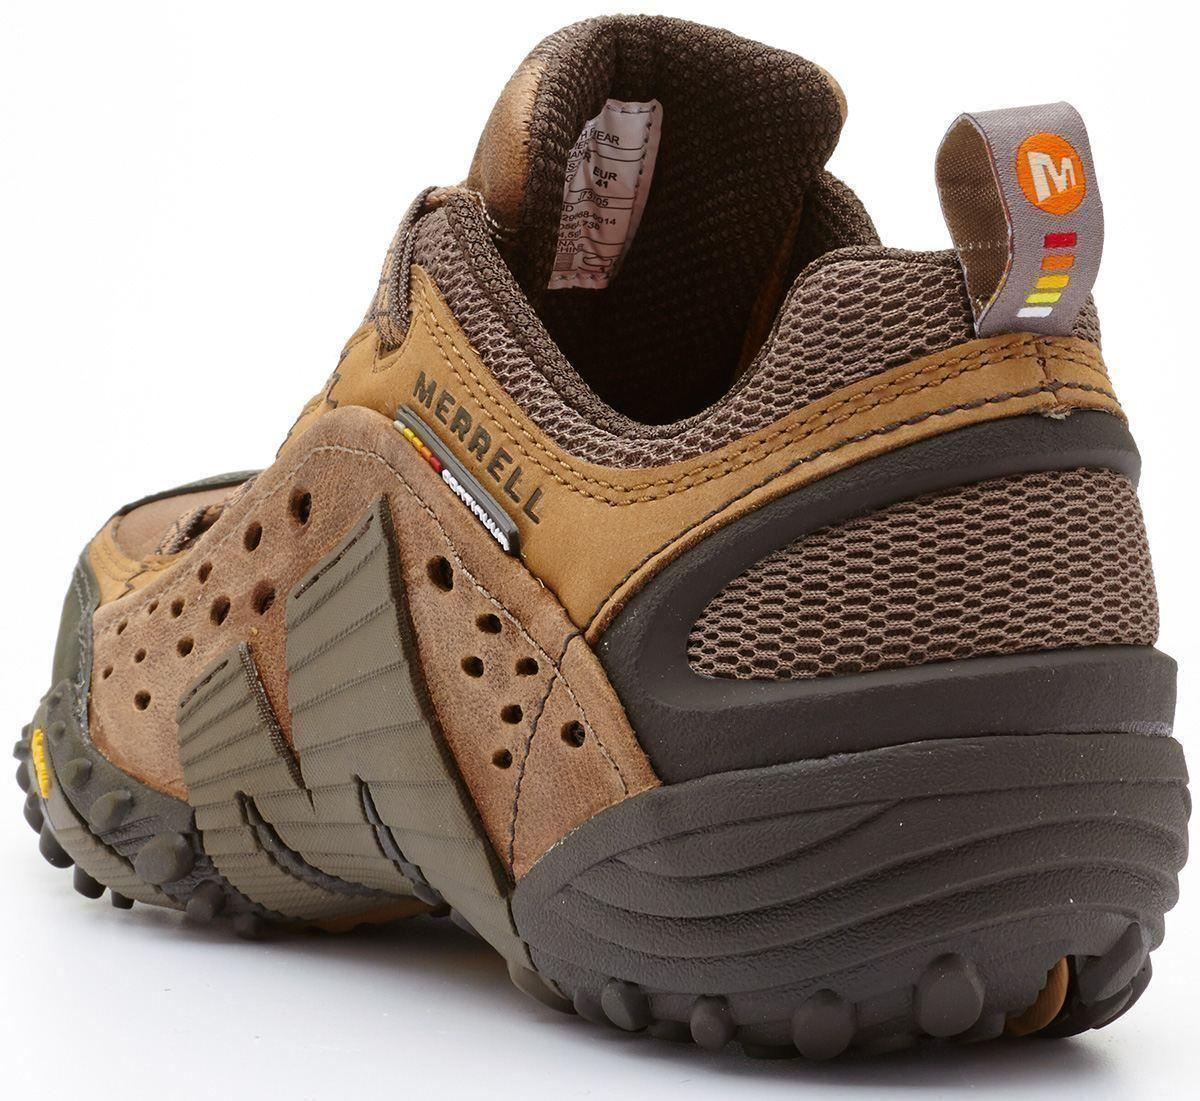 Merrell-Intercept-Hiking-Shoes-in-Moth-Brown-amp-Blue-Wing-amp-Black thumbnail 12